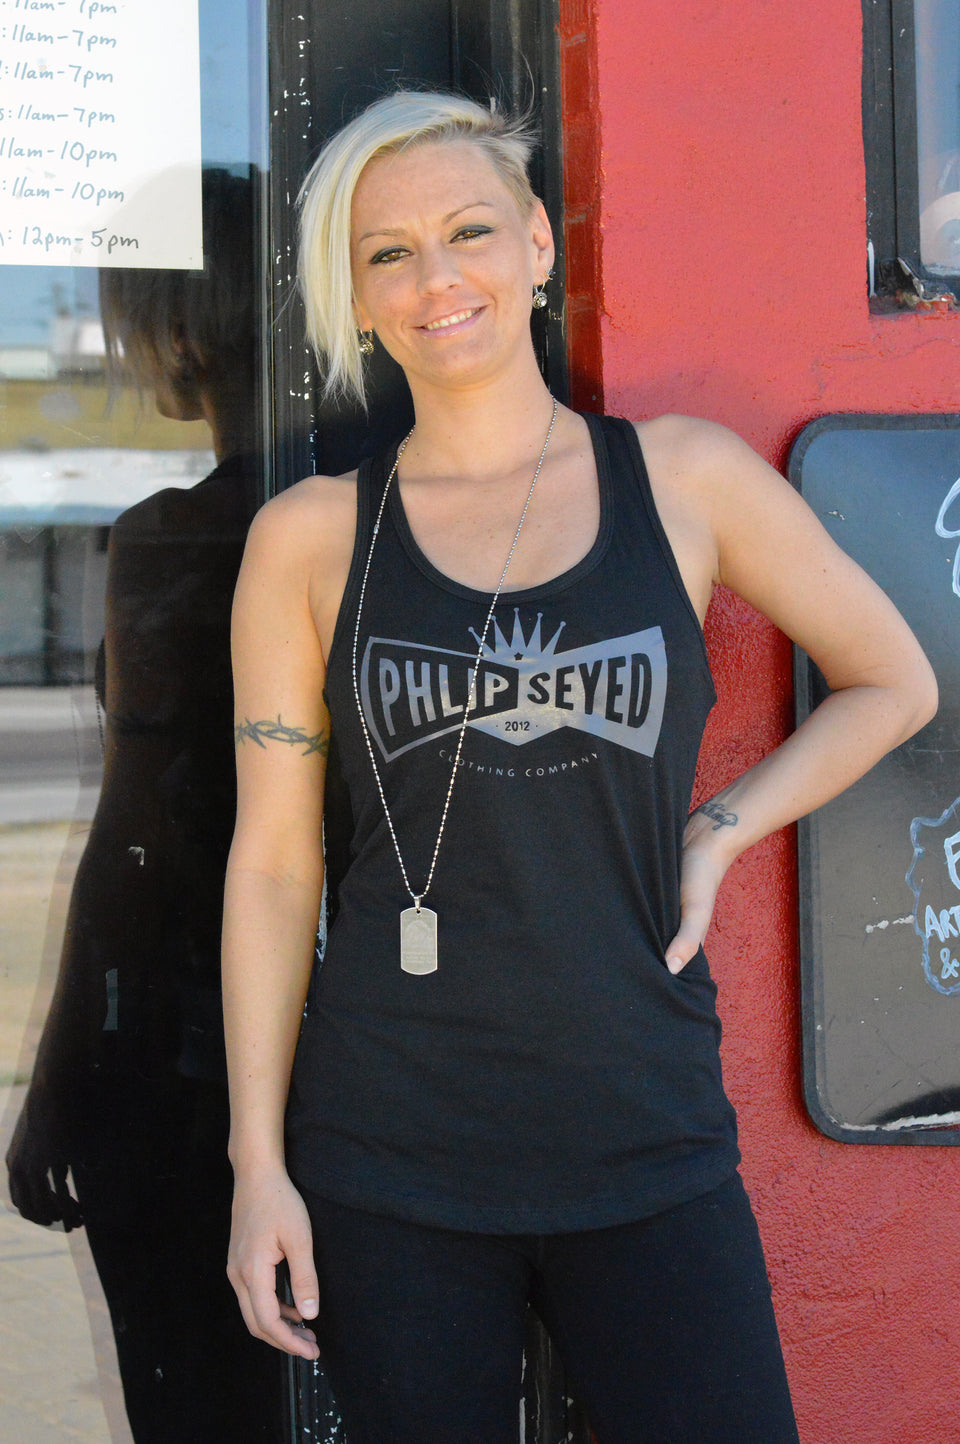 Phlipseyed Wistful Women's Tank / Black